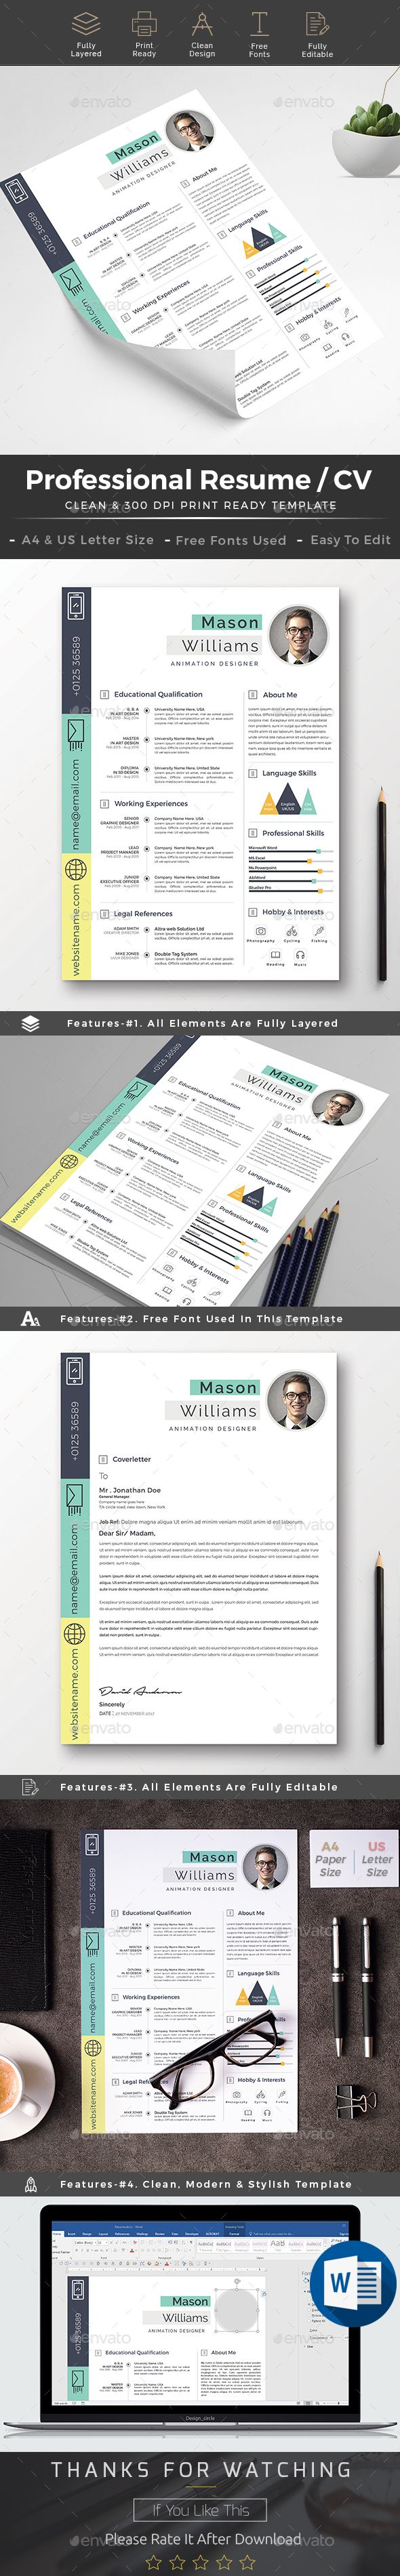 Resume cv word 21 best Creative CV